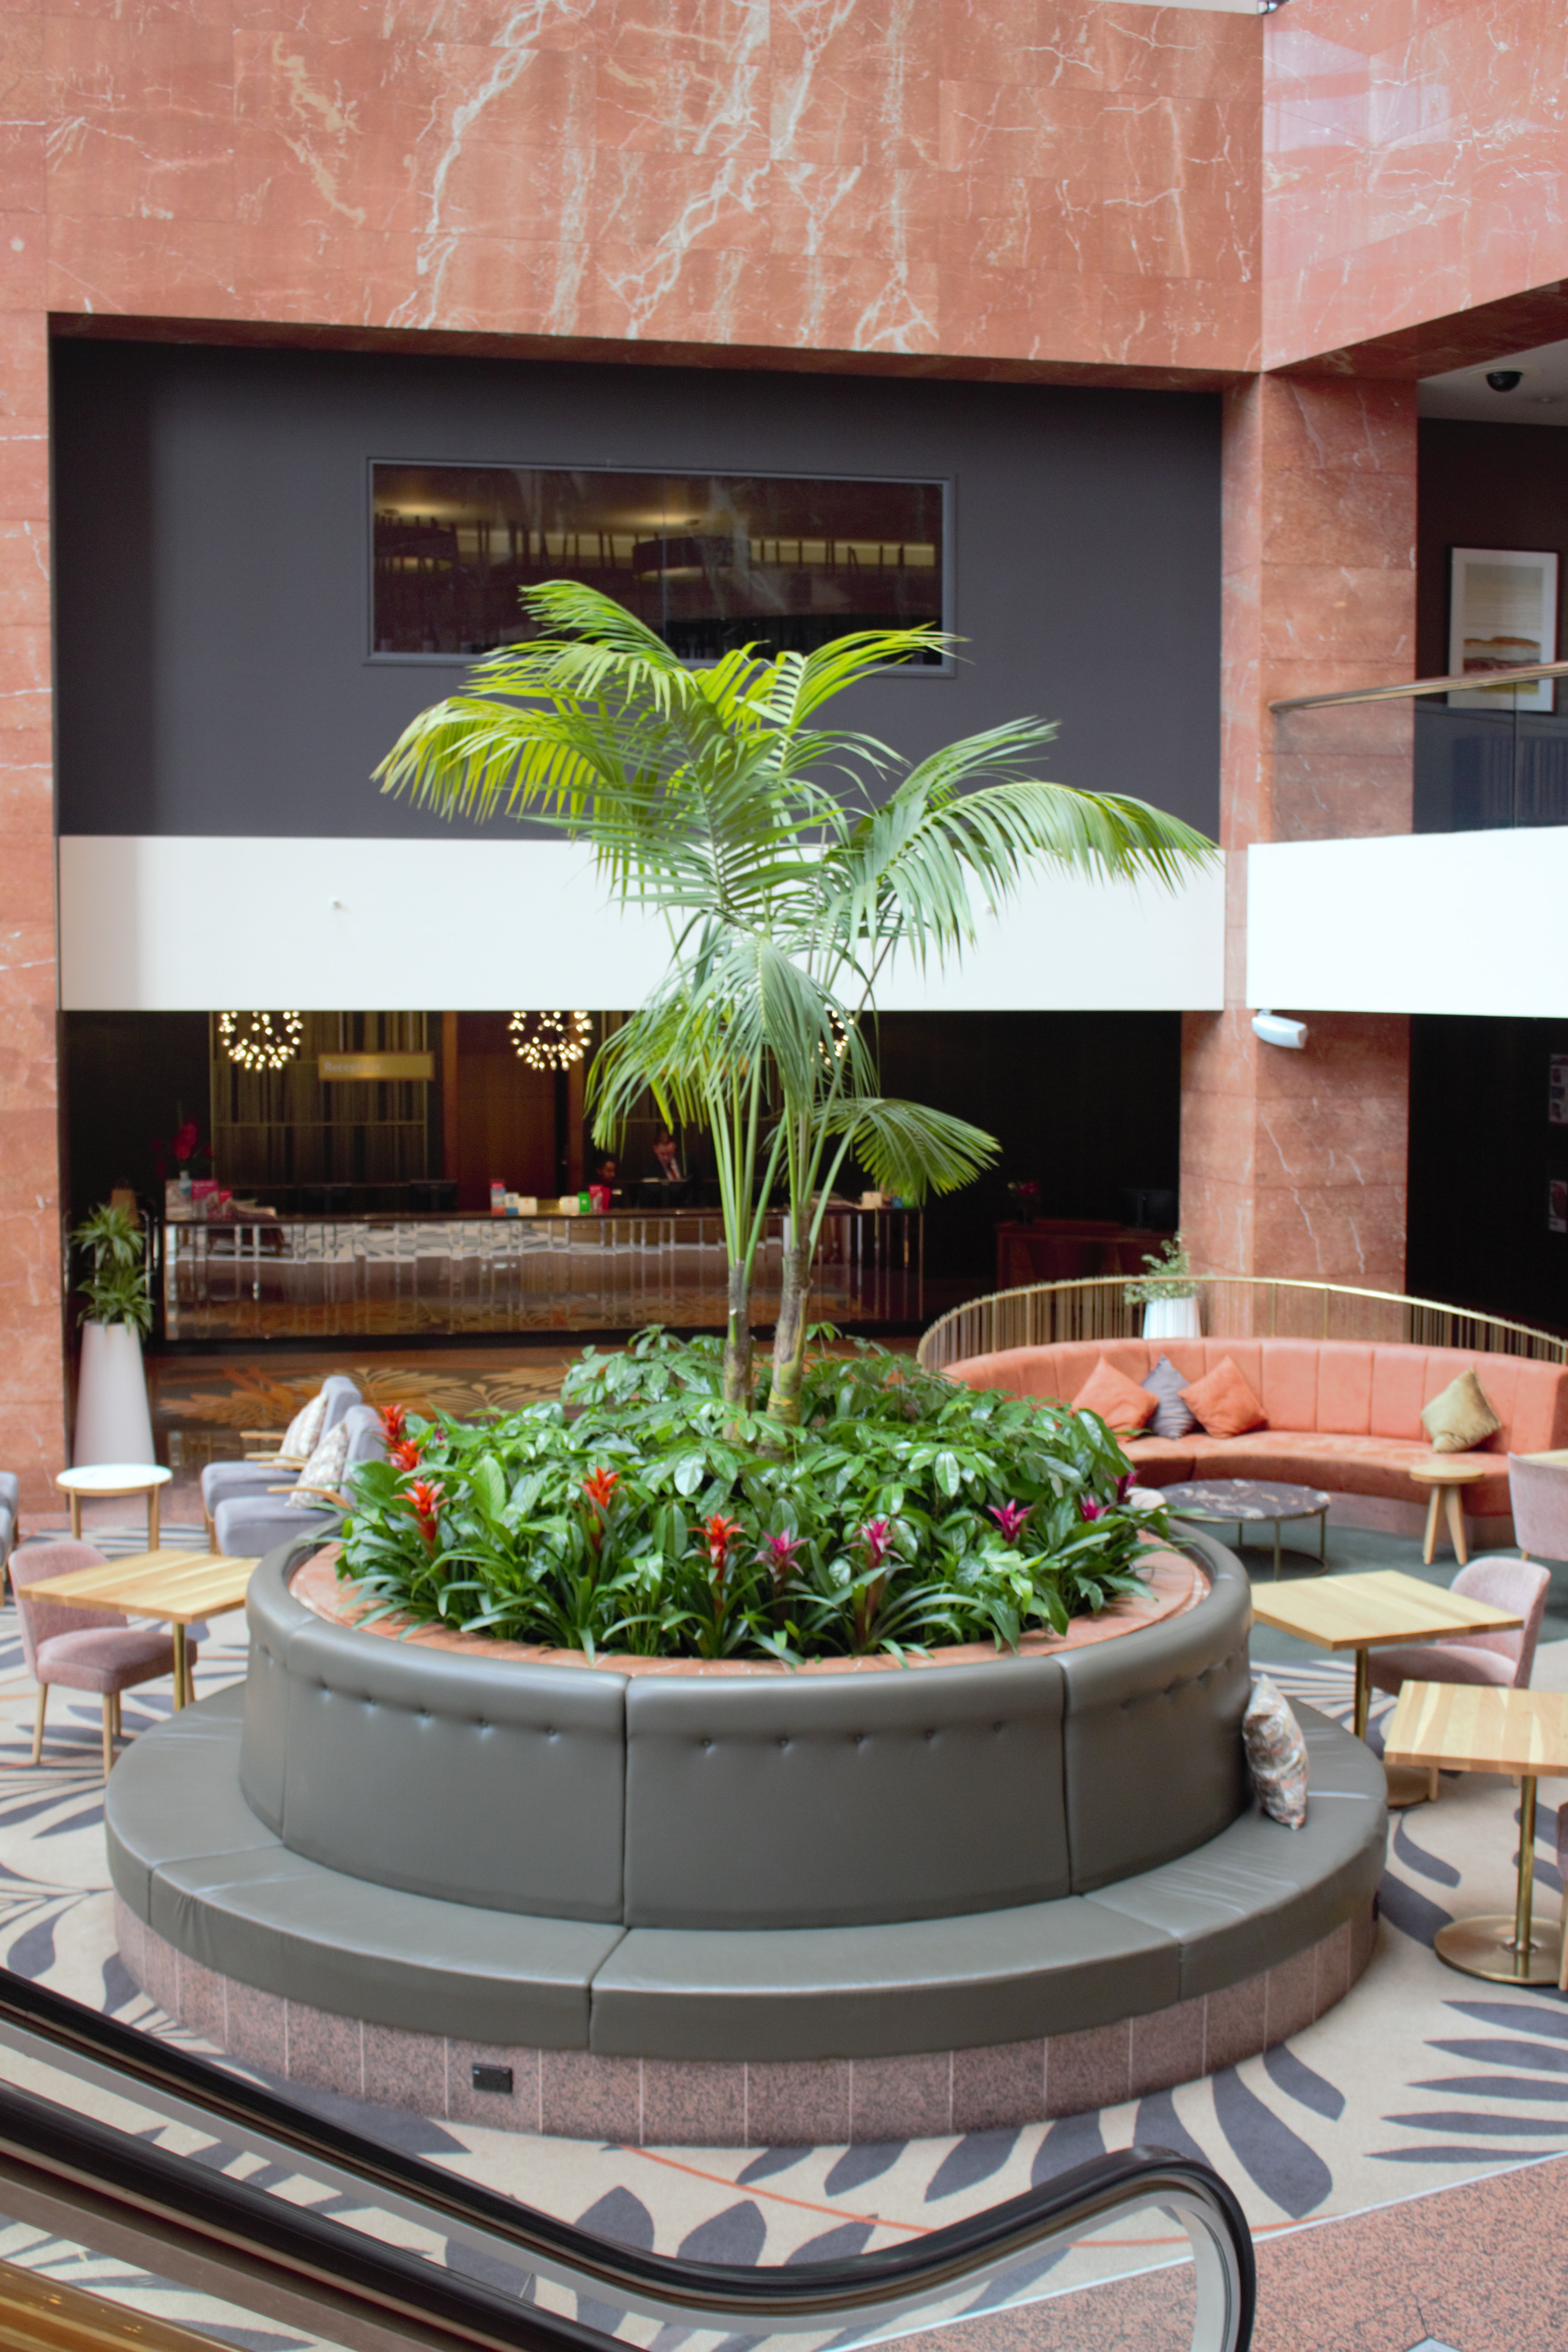 IKP5_IFP2_IBR1___Kentia_Palm__Schefflera_Amate_and_Bromeliad_in_Atrium_Garden___Grand_Millenium_hotel